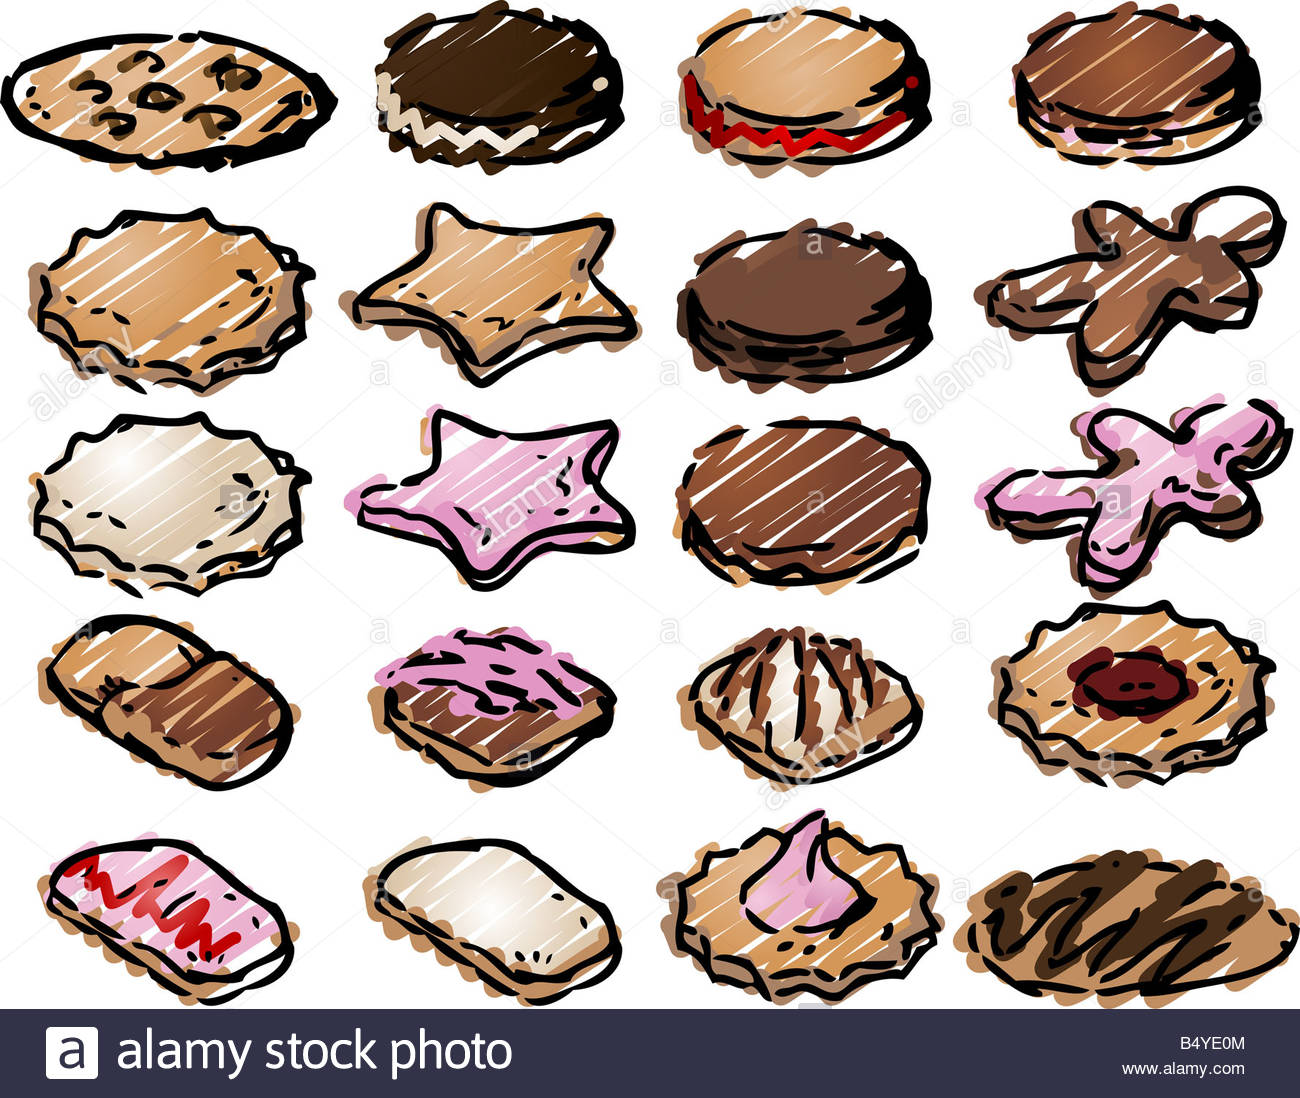 Assorted Fancy Decorated Cookie Biscuit Clipart Icon Illustration.